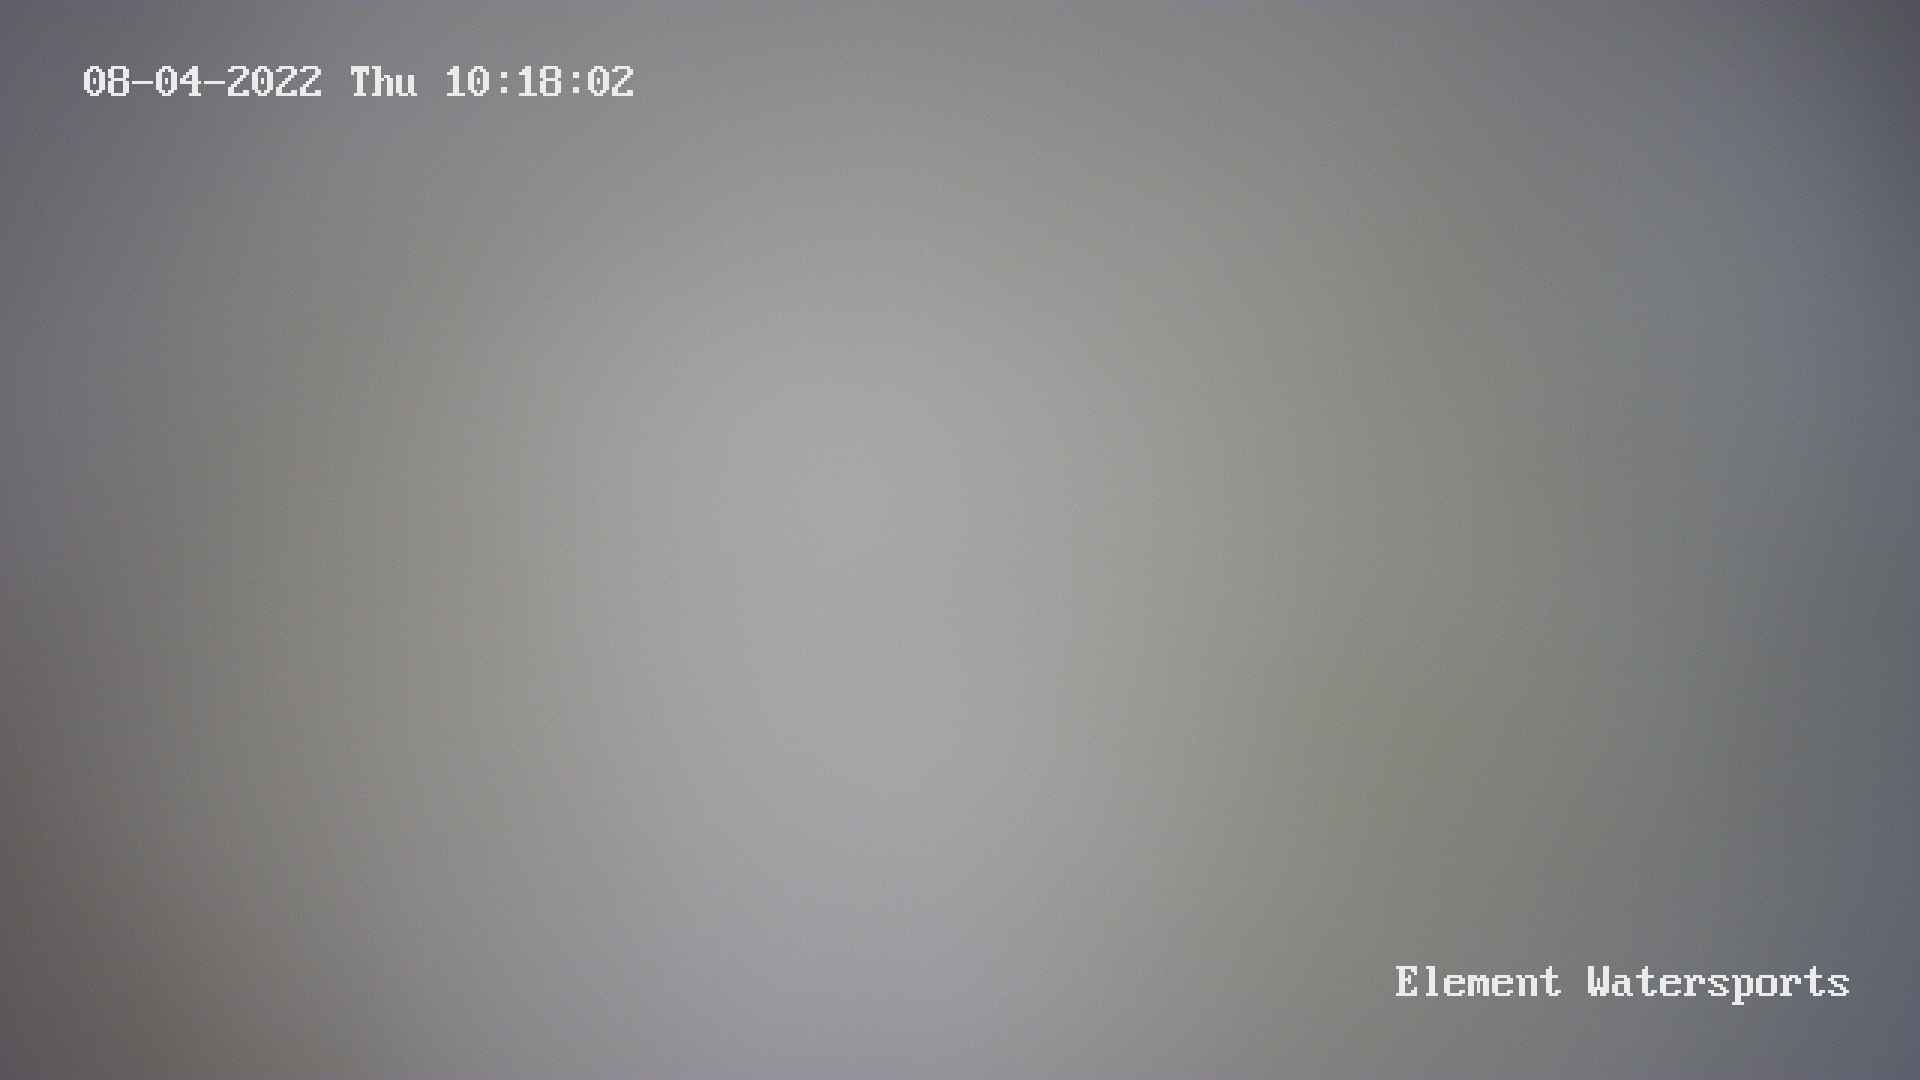 Livecam Element Watersports kitsurfing - kiteborarding - windsurfing El Gouna